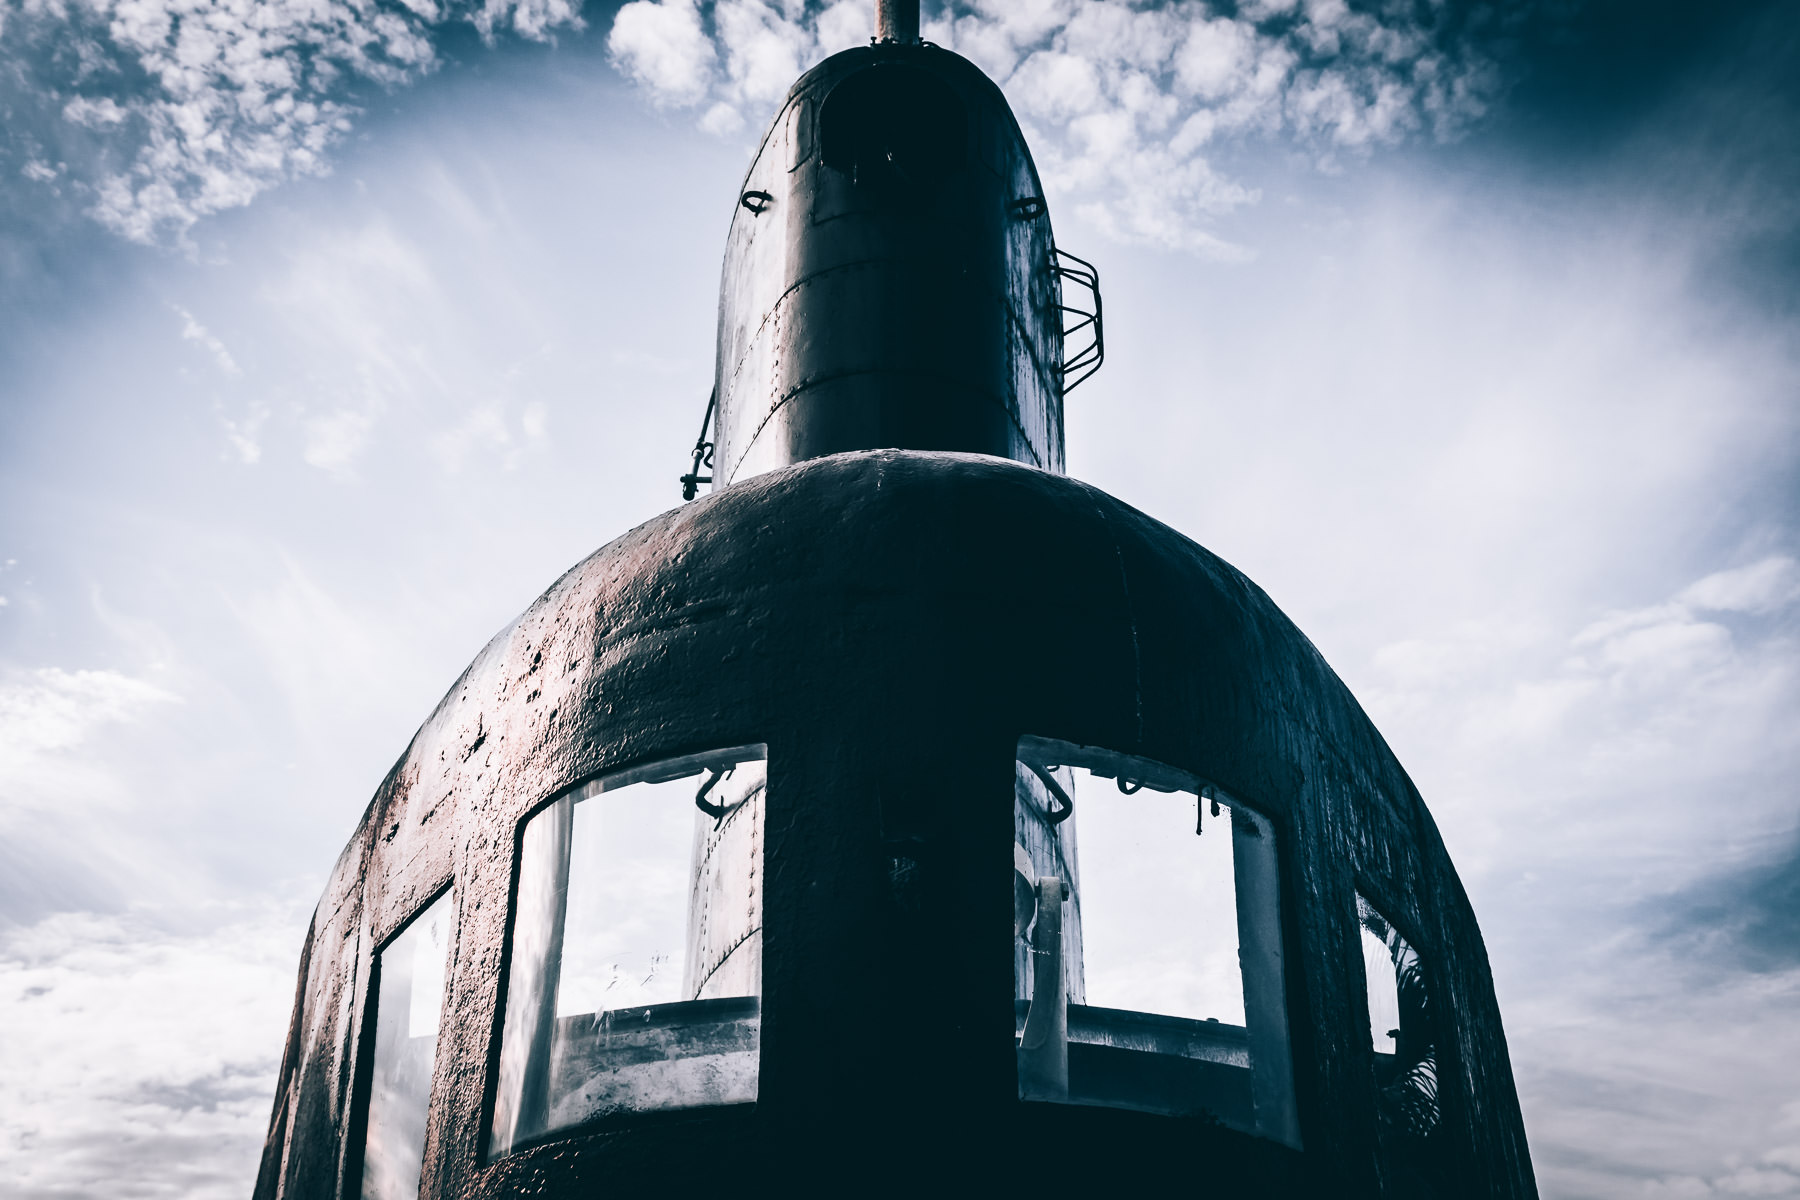 The sail (or conning tower) of the Gato-class submarine USS Cavalla rises into the late afternoon sky over Galveston, Texas' Seawolf Park.